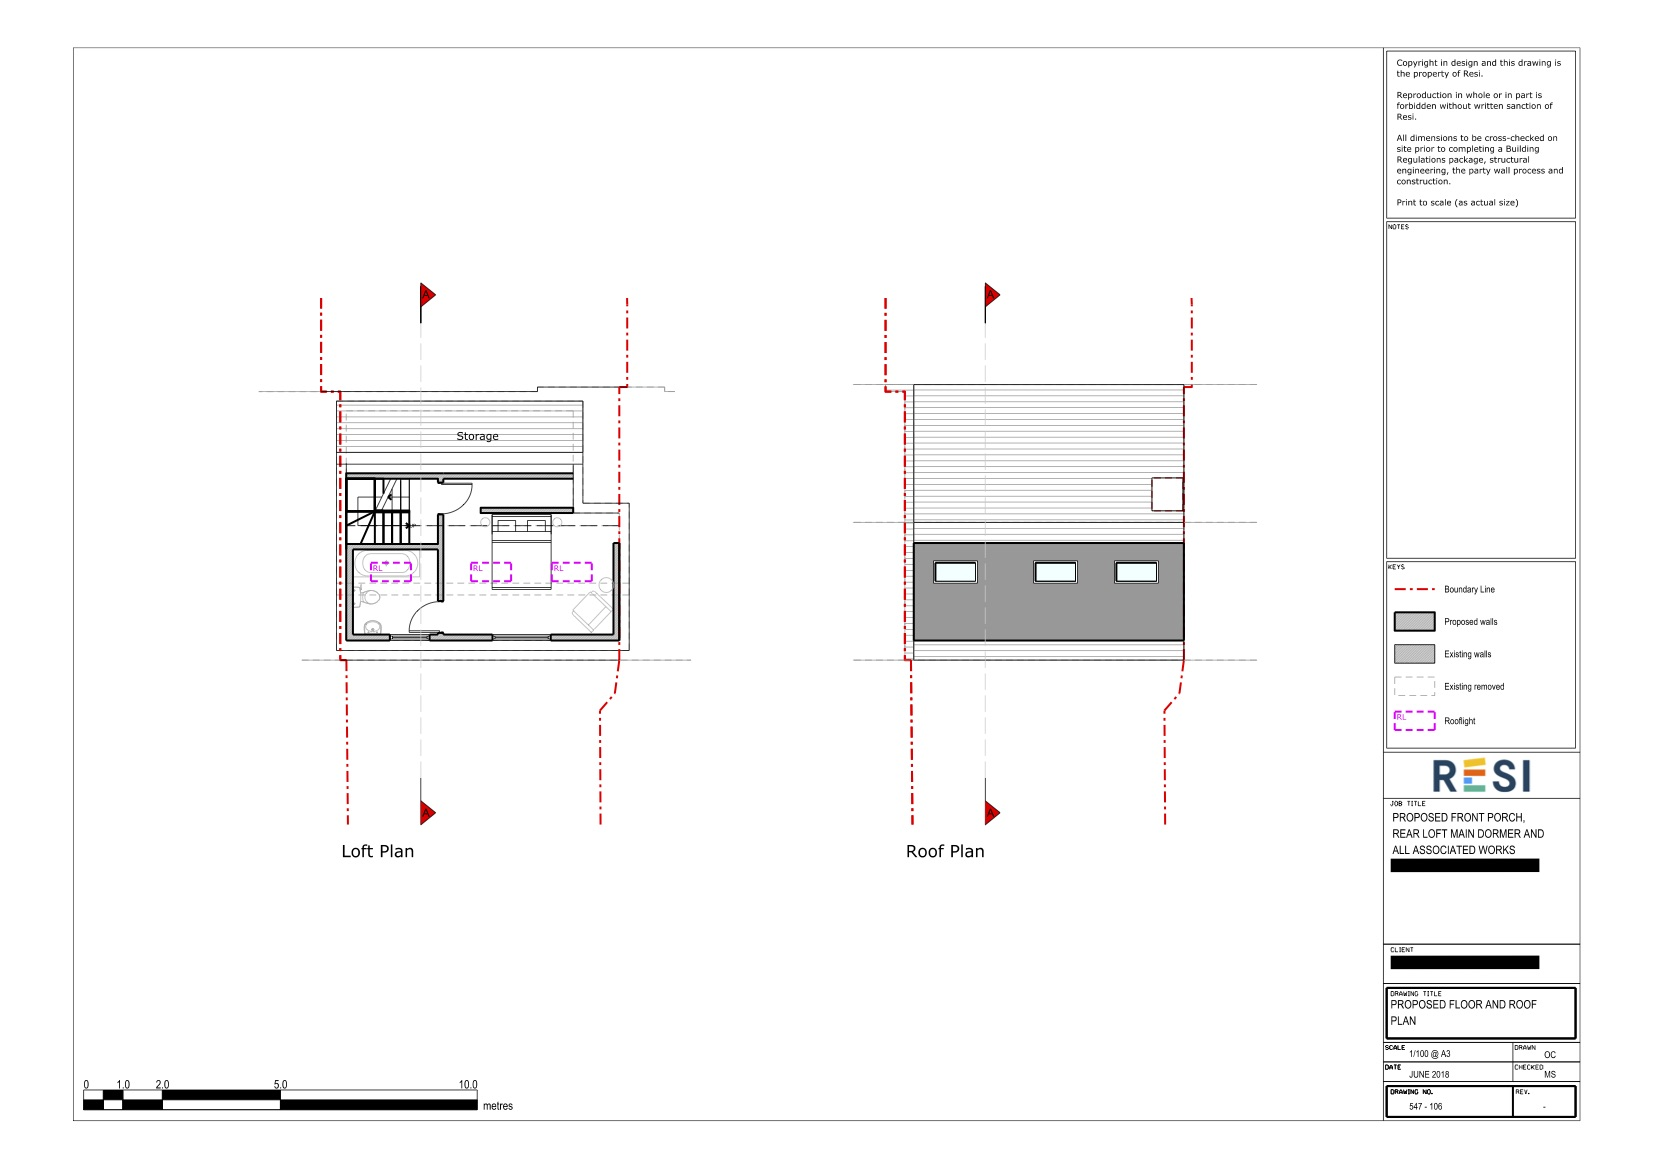 Existing and proposed  drawings   loft and roof plans